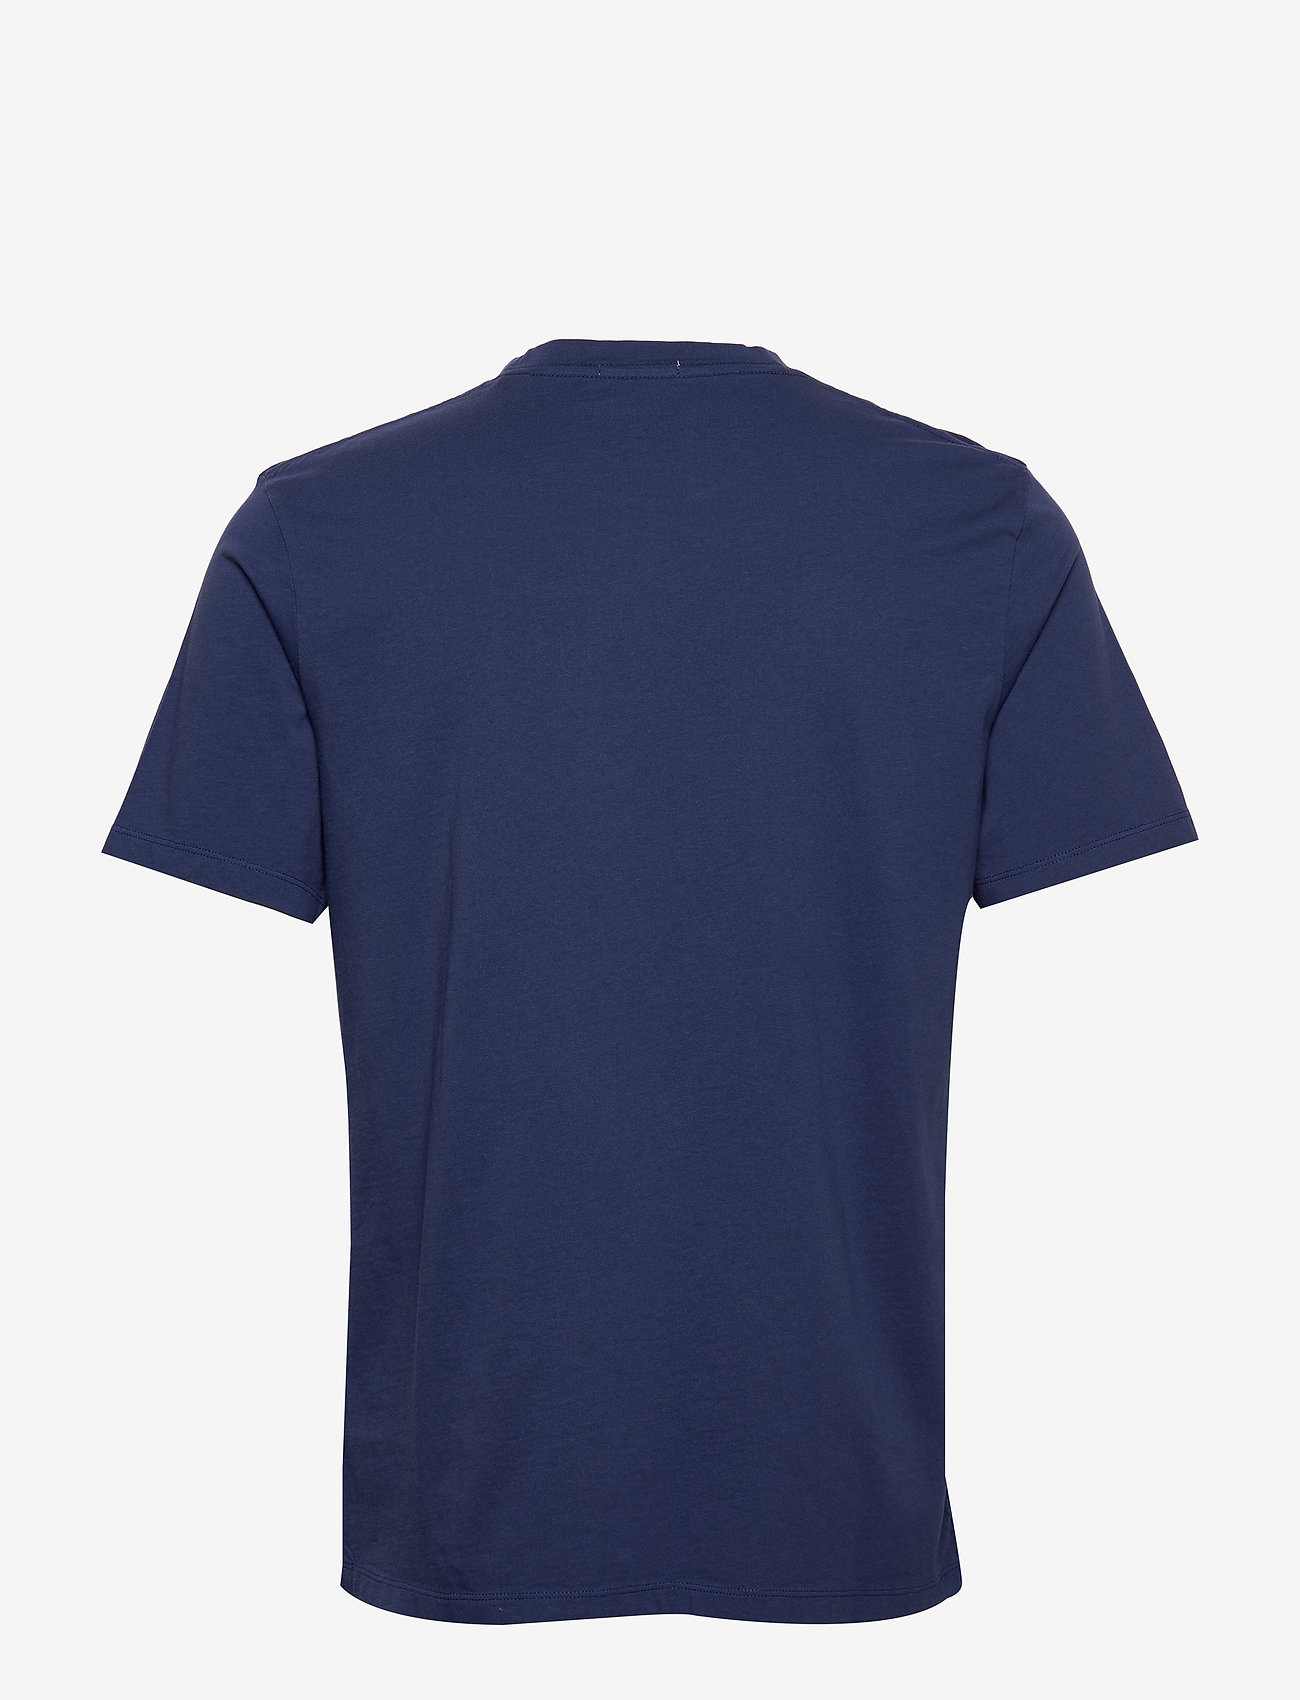 Scotch & Soda - Classic crewneck tee in organic cotton jersey - t-shirts basiques - worker blue - 1